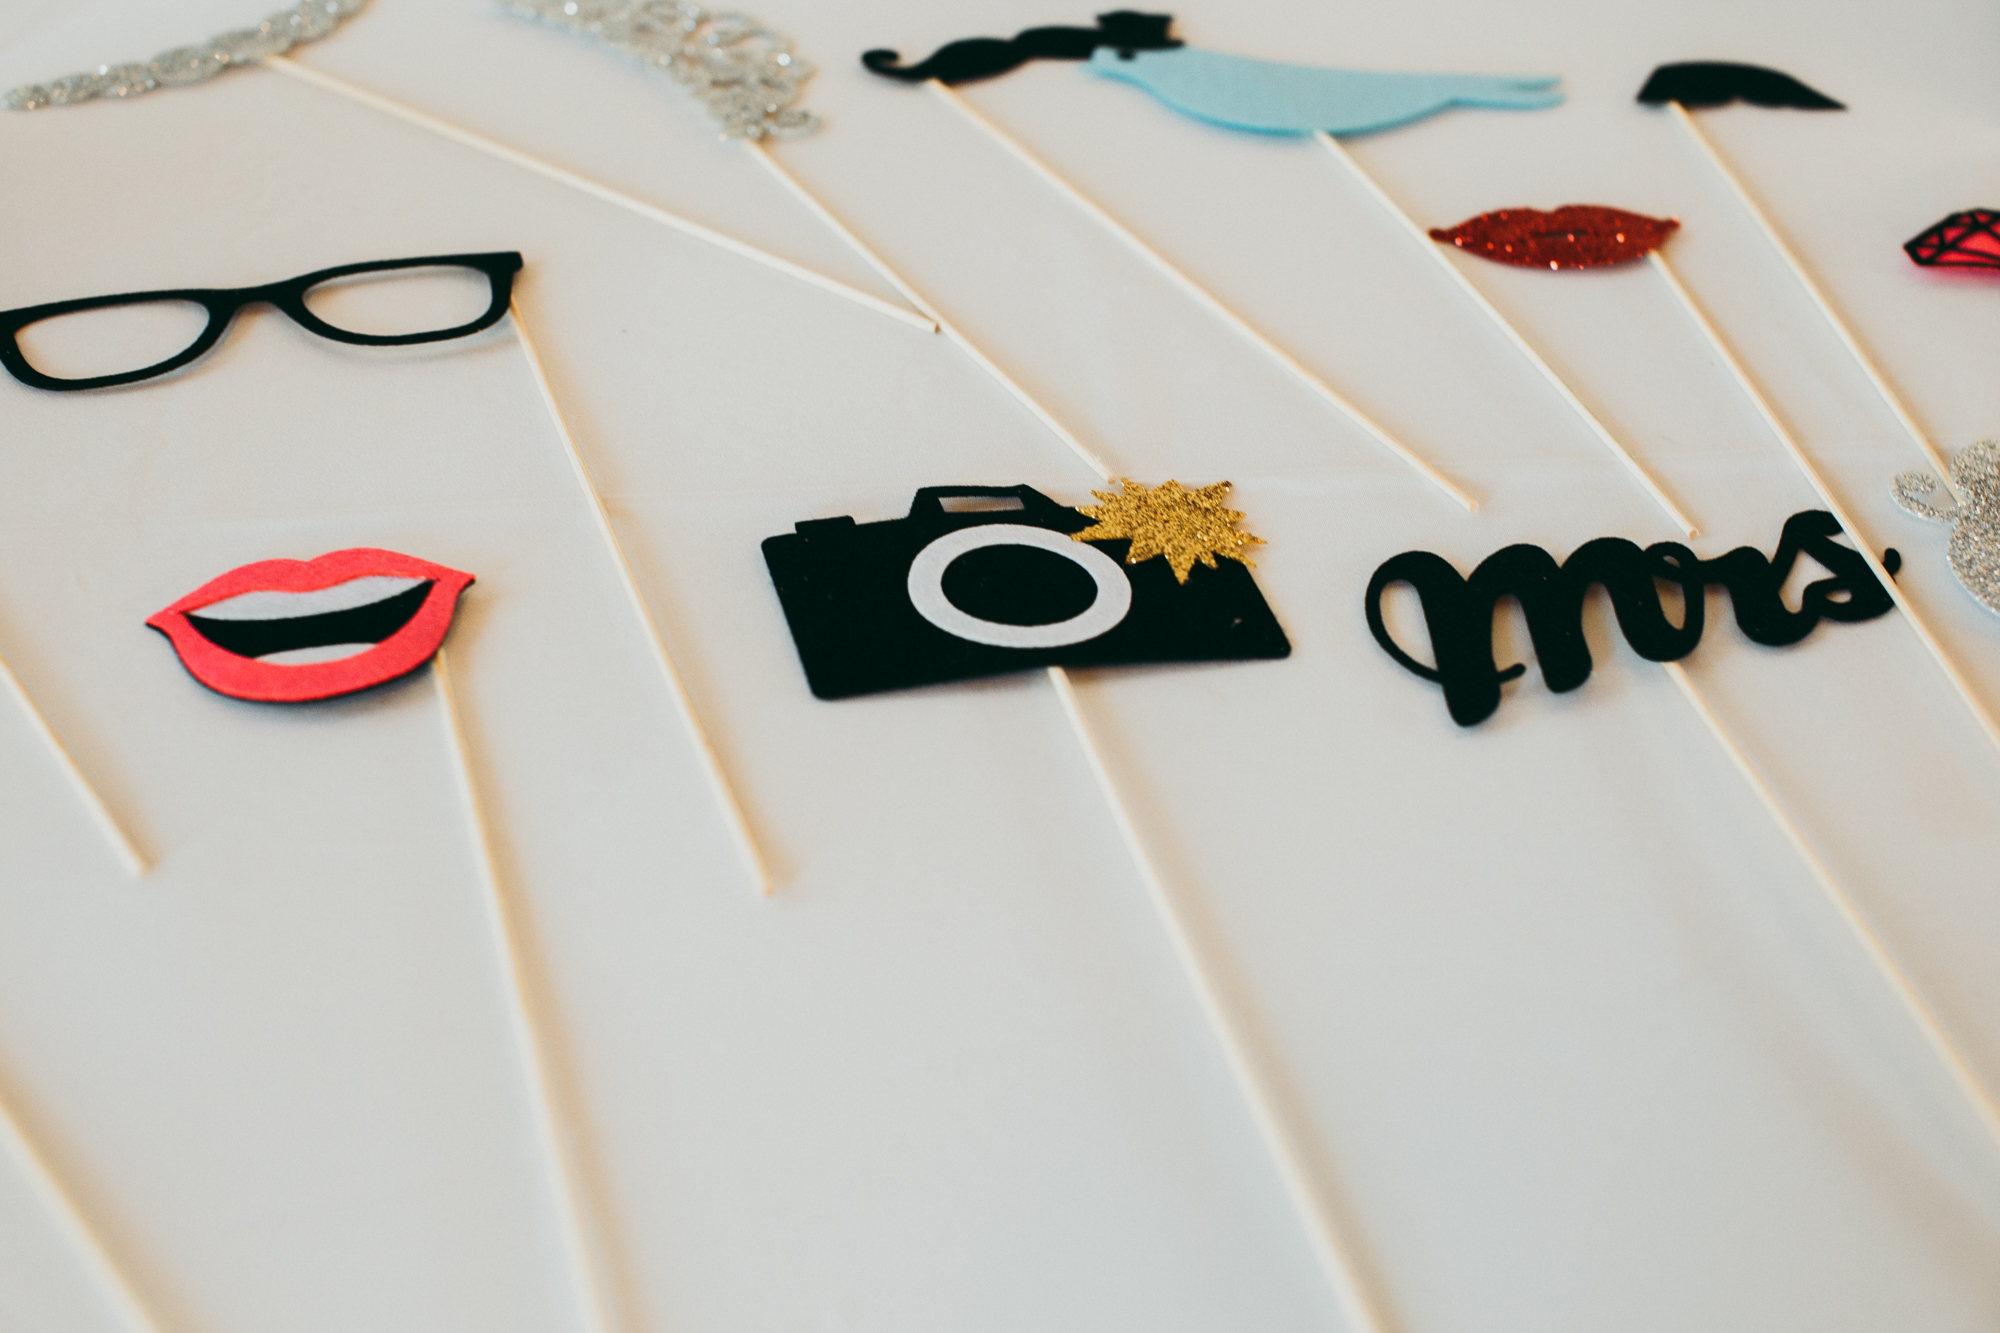 Photo booth props, including camera, mrs., red lips, black hipster glasses, blue bird, black moustache.